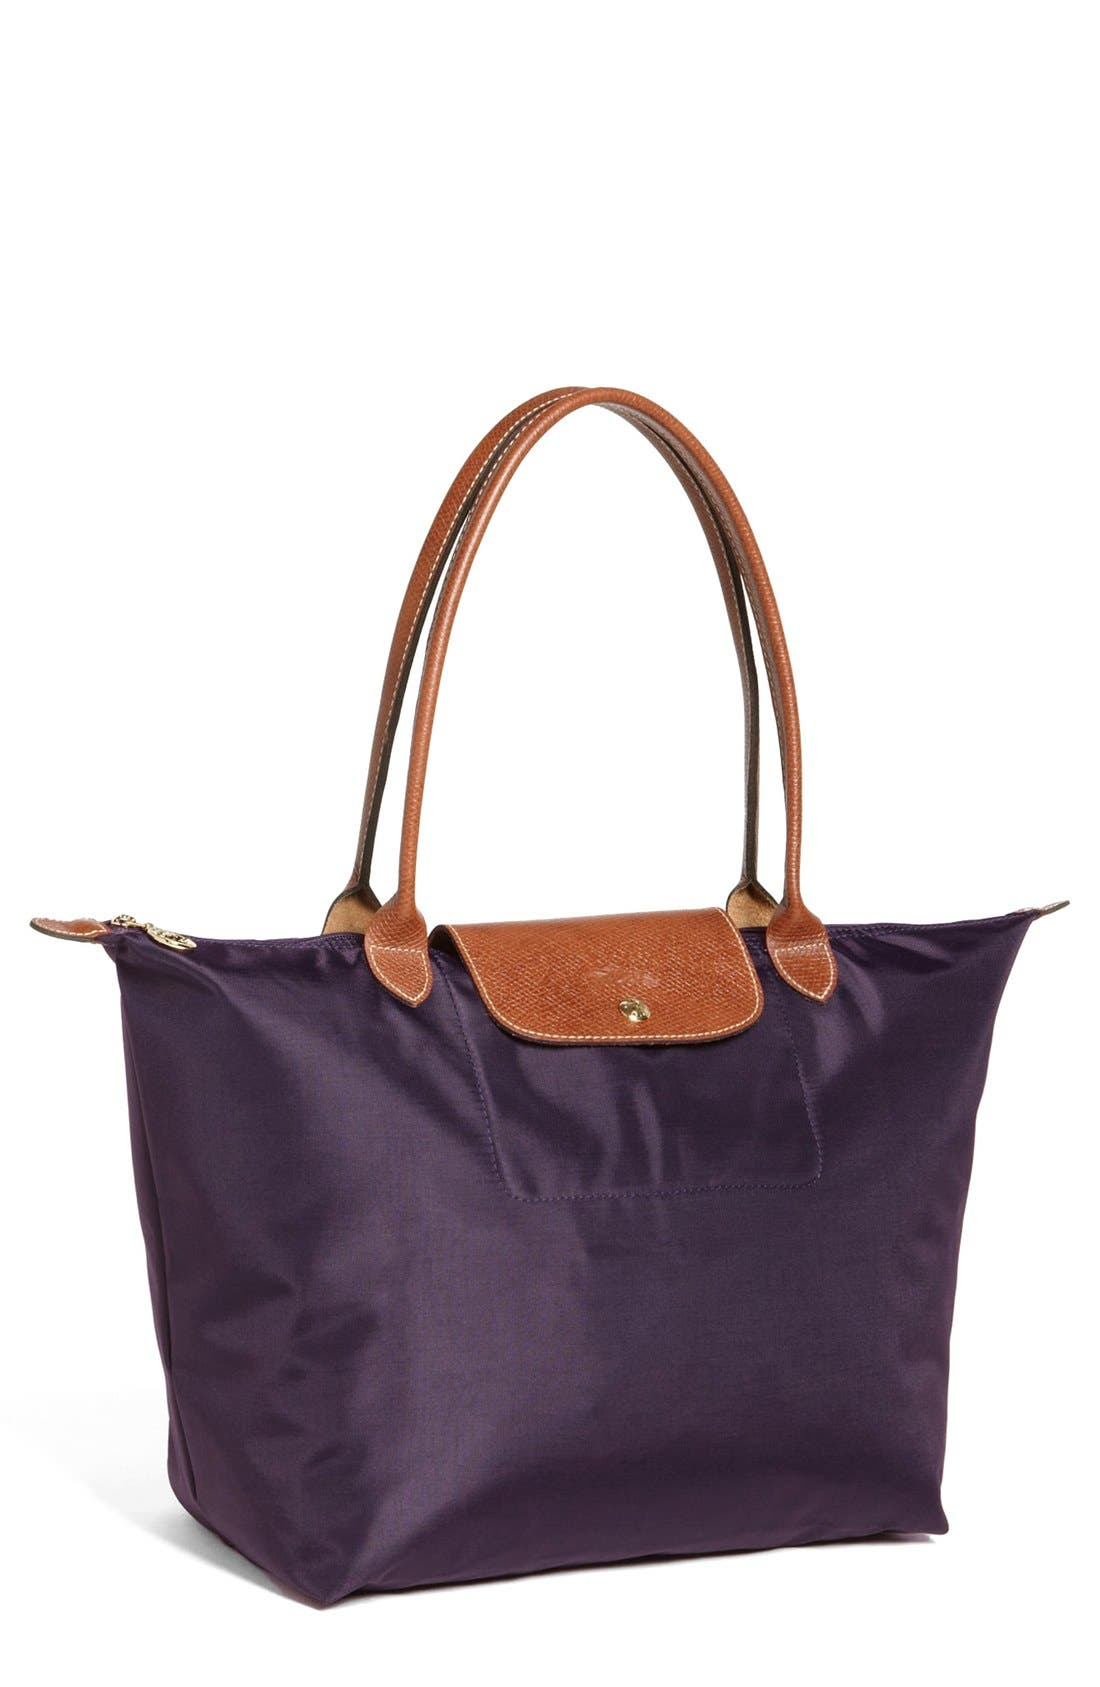 Main Image - Longchamp 'Large Le Pliage' Nylon Tote